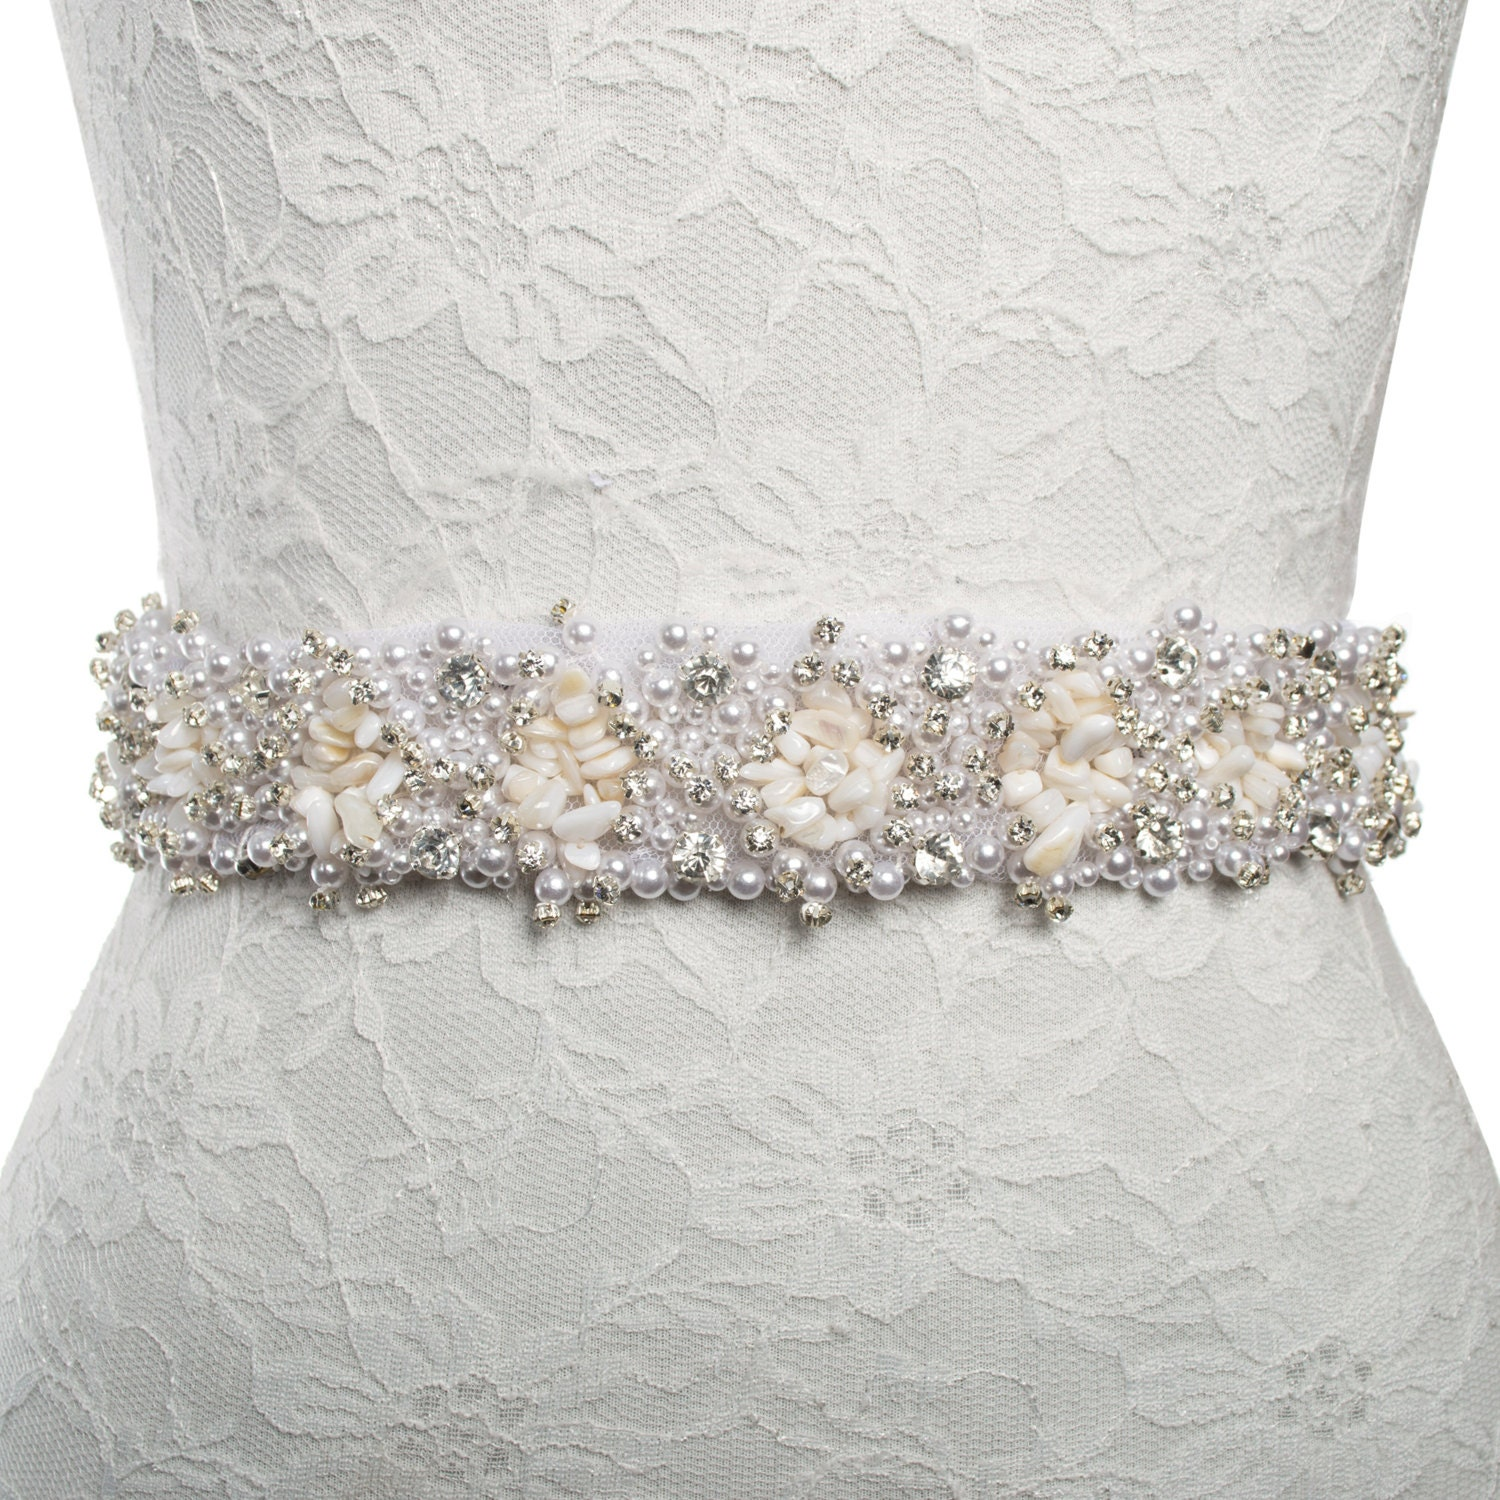 Wedding Dress Accessories Belt : Beach wedding dress accessories sash belt shell by samiteredowa